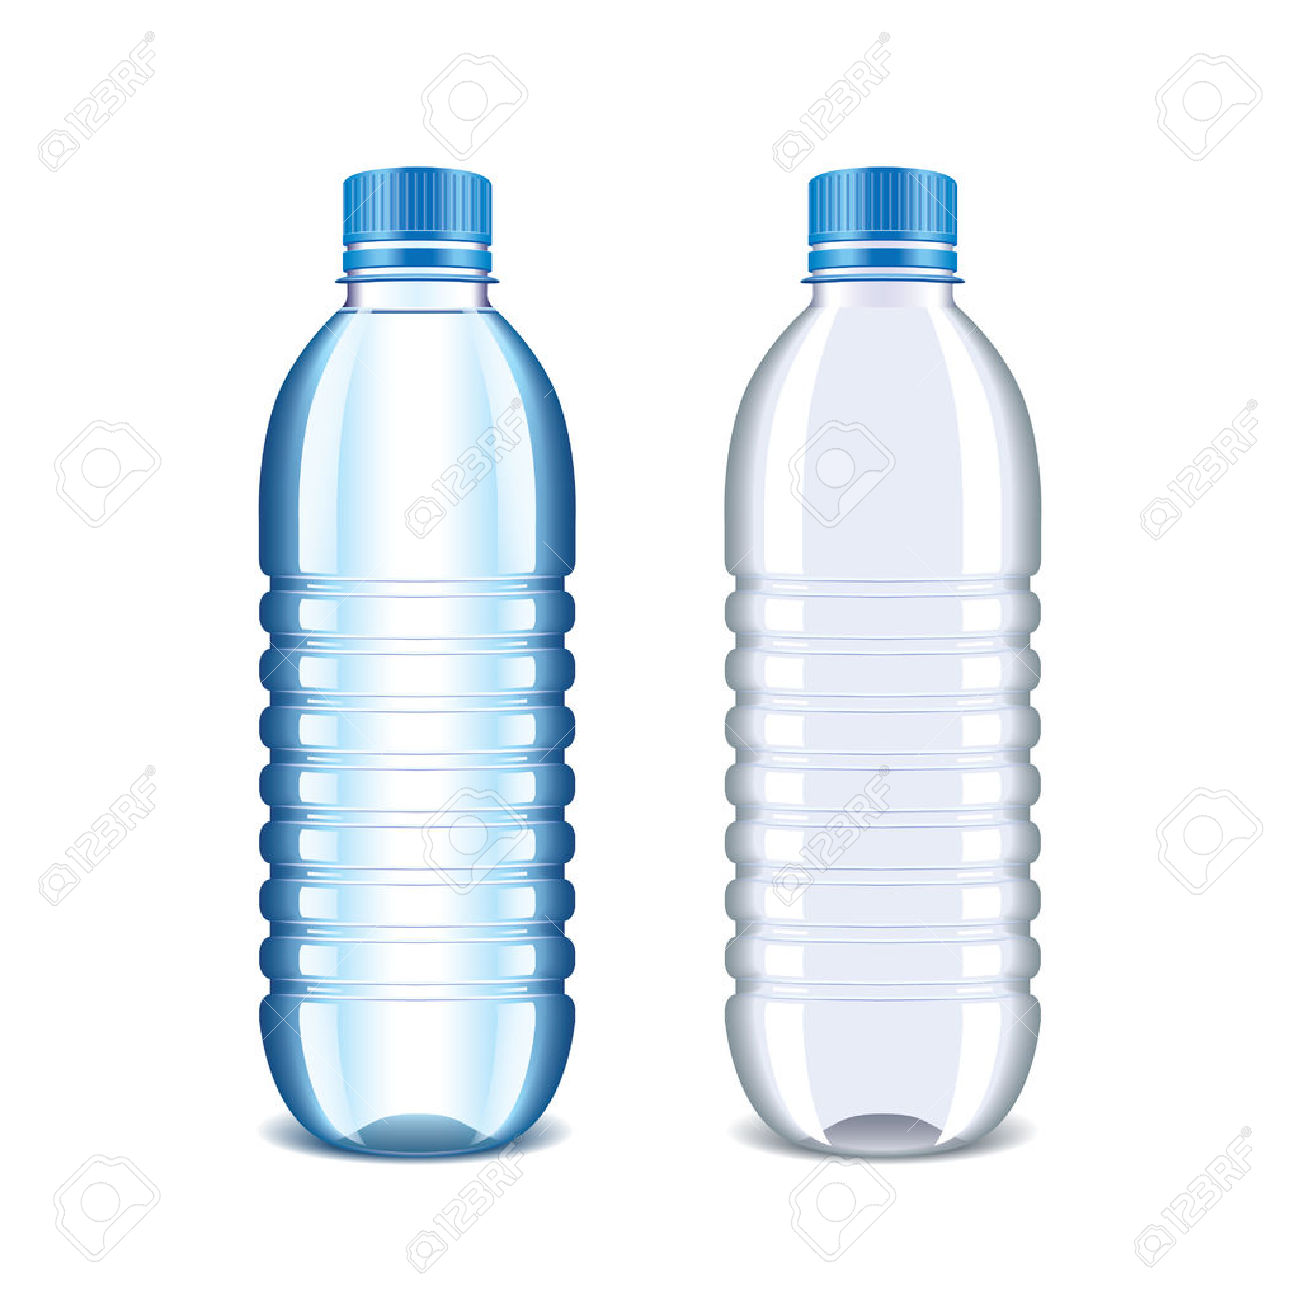 Plastic Bottle For Water Isolated On White Royalty Free Cliparts.